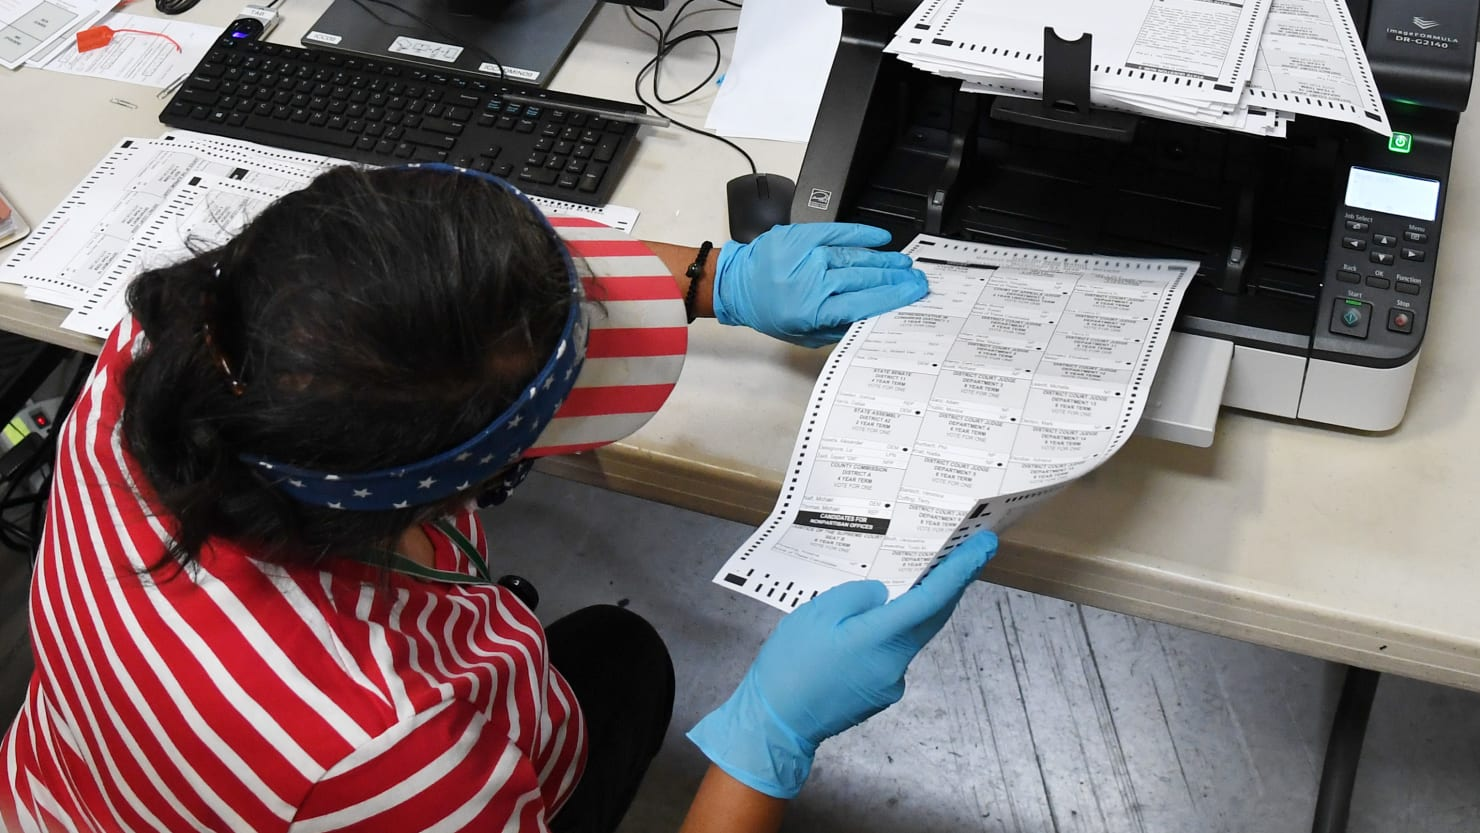 Nevada GOP Files Emergency Motion to Disrupt Mail-In Ballot Counting